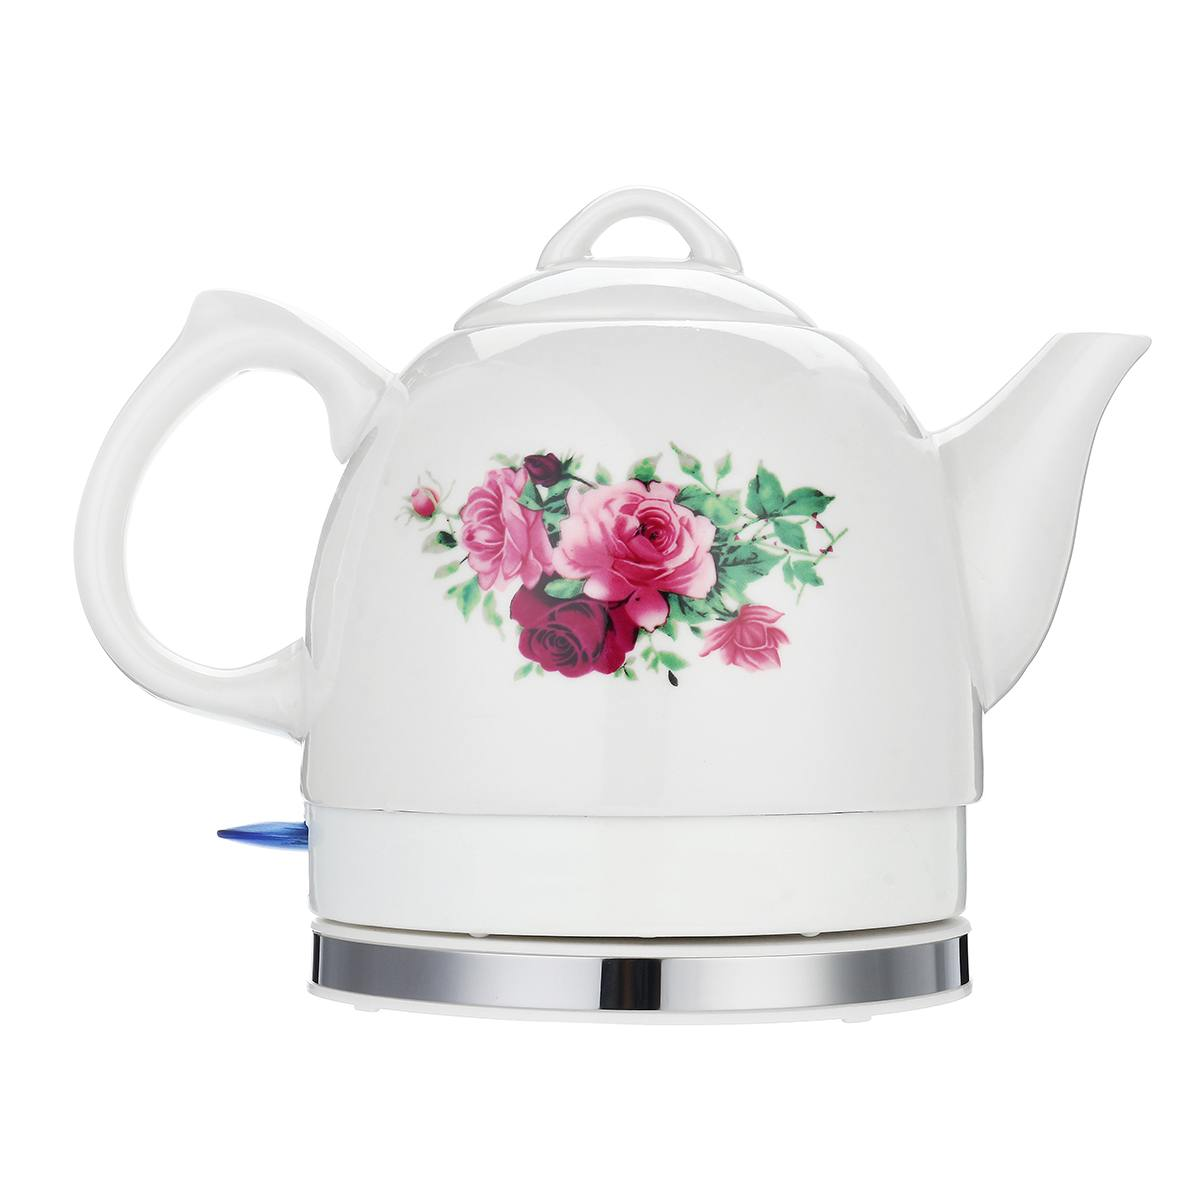 1 L Ceramic Electric Water Kettle High Power Electric Kettle With Safety Automatic power-off Function Quick Boiling Tea Pot цена и фото